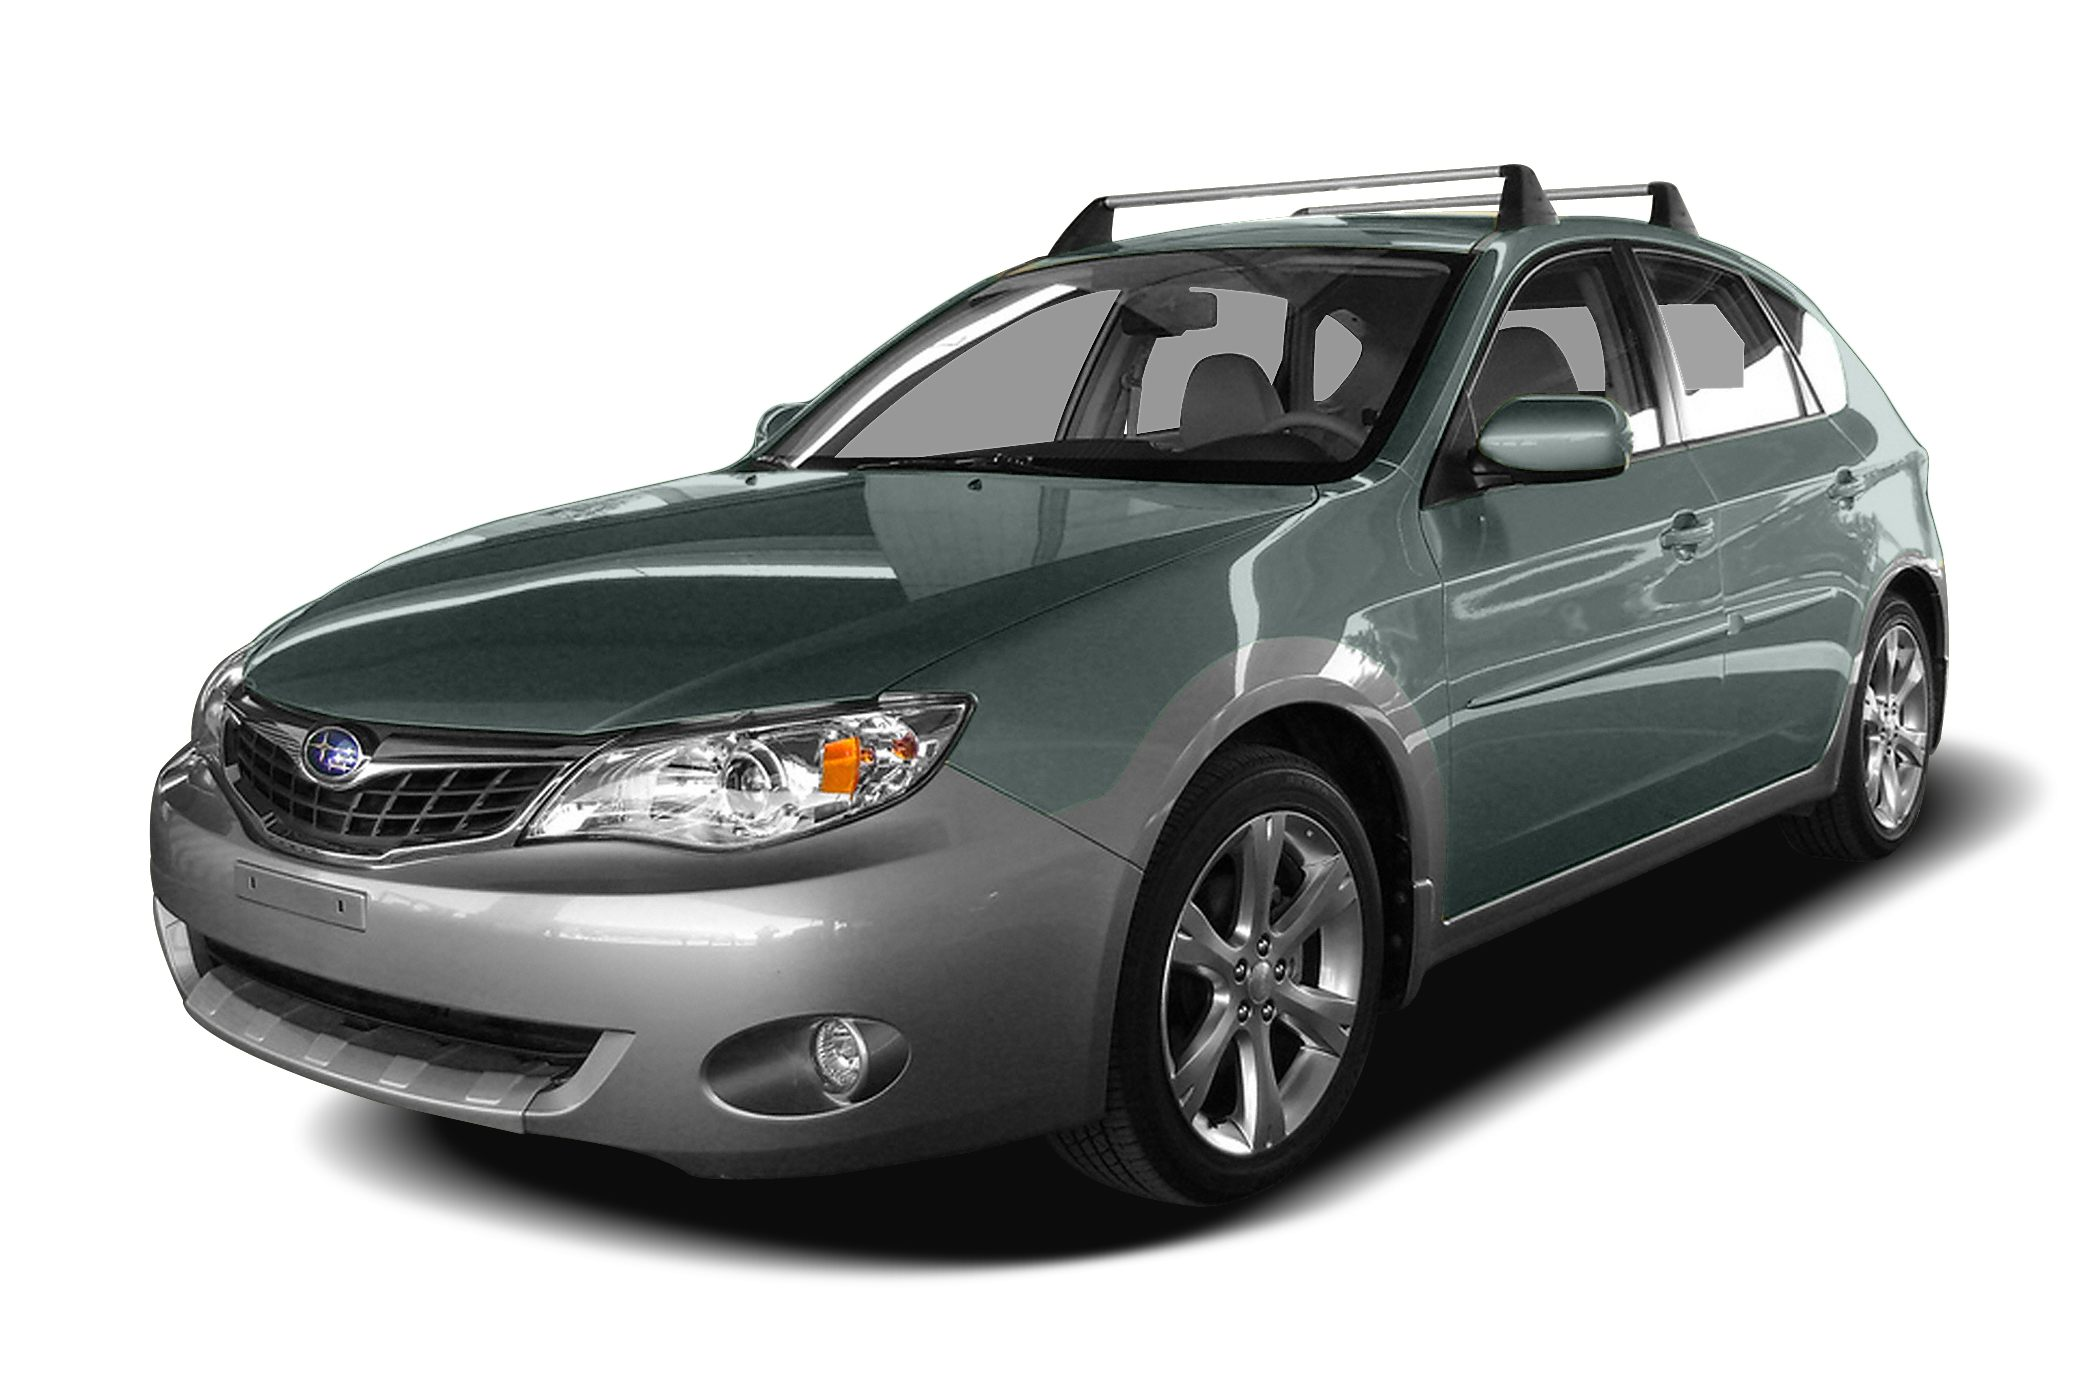 USB90SUC071A0101 Take A Look About 2002 Subaru Impreza Wrx Specs